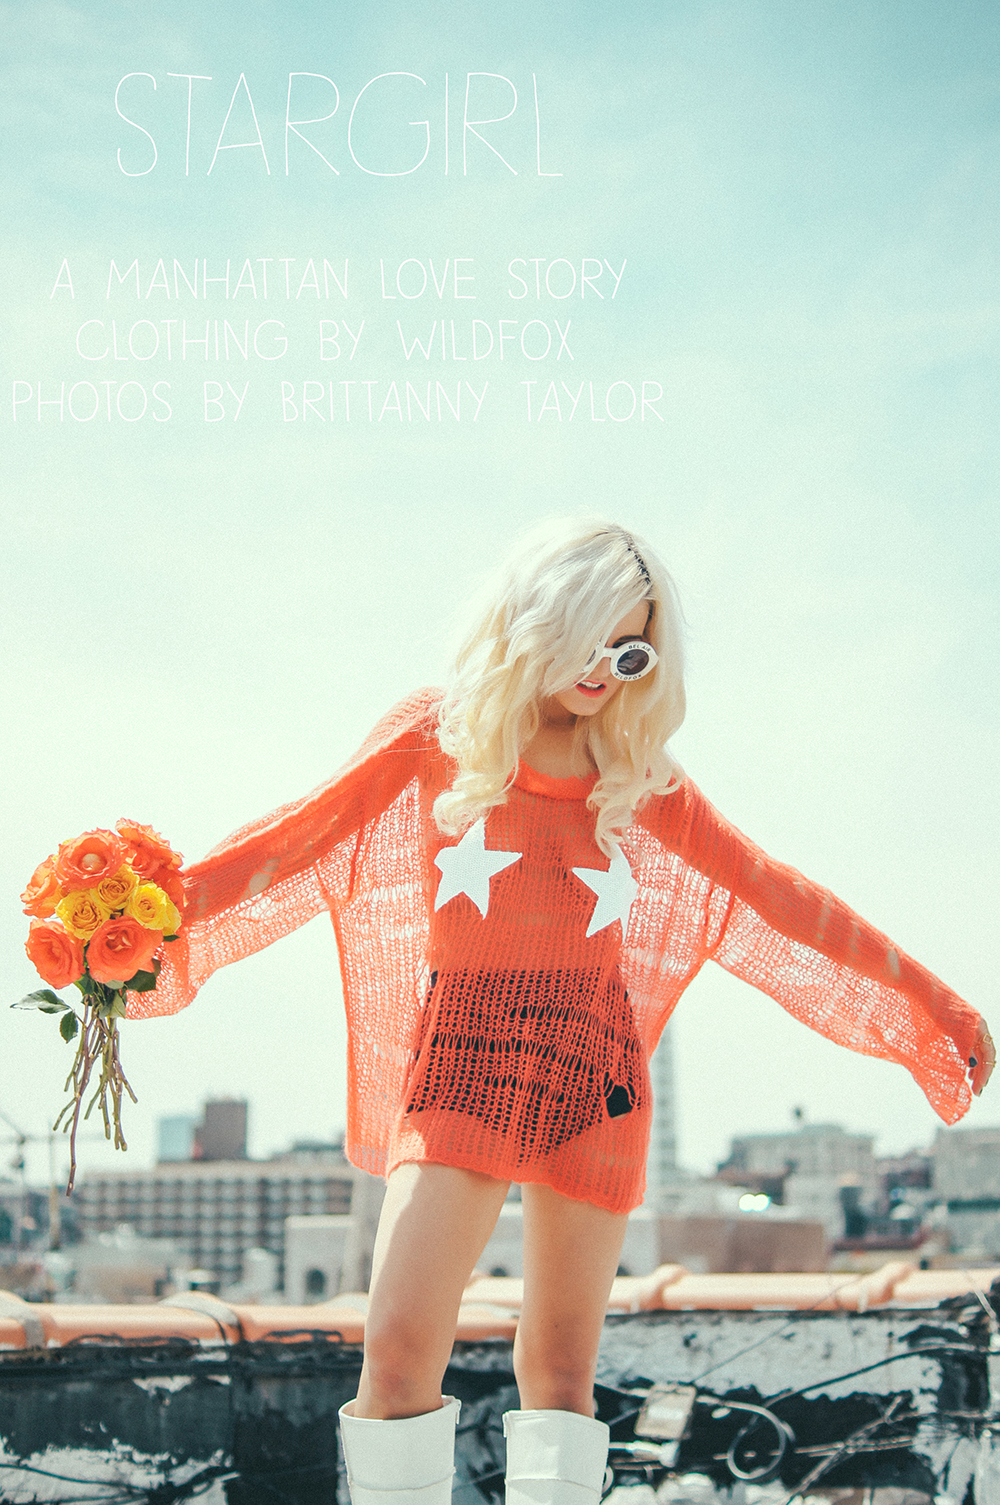 wildfox, rachel lynch, i hate blonde, royal romance